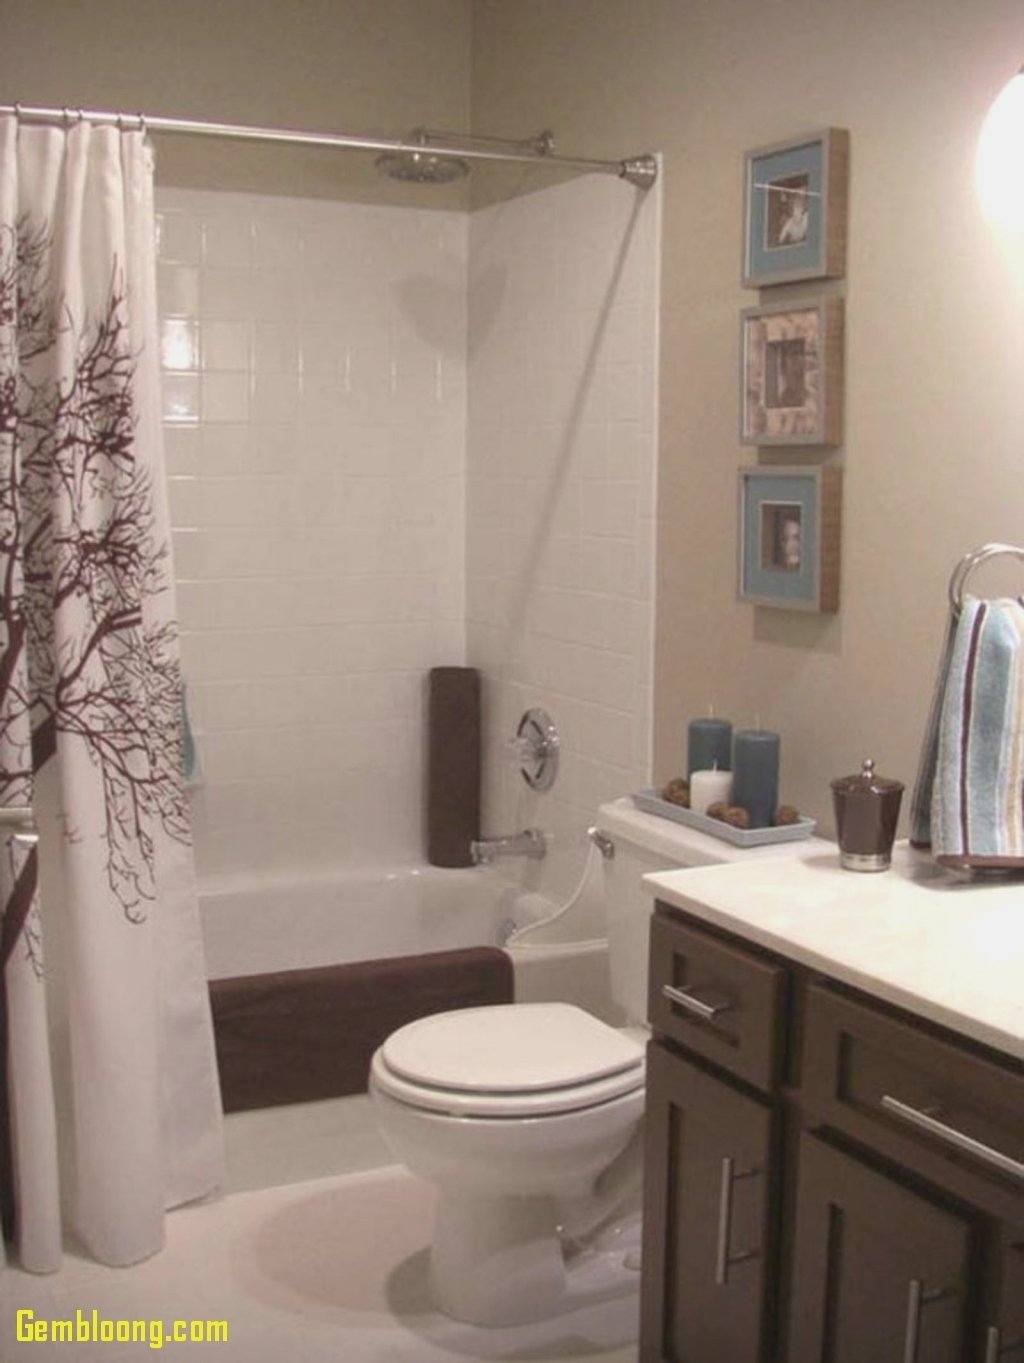 10 Trendy Shower Curtain Ideas For Small Bathrooms bathroom bathroom shower new best of small bathroom shower curtain